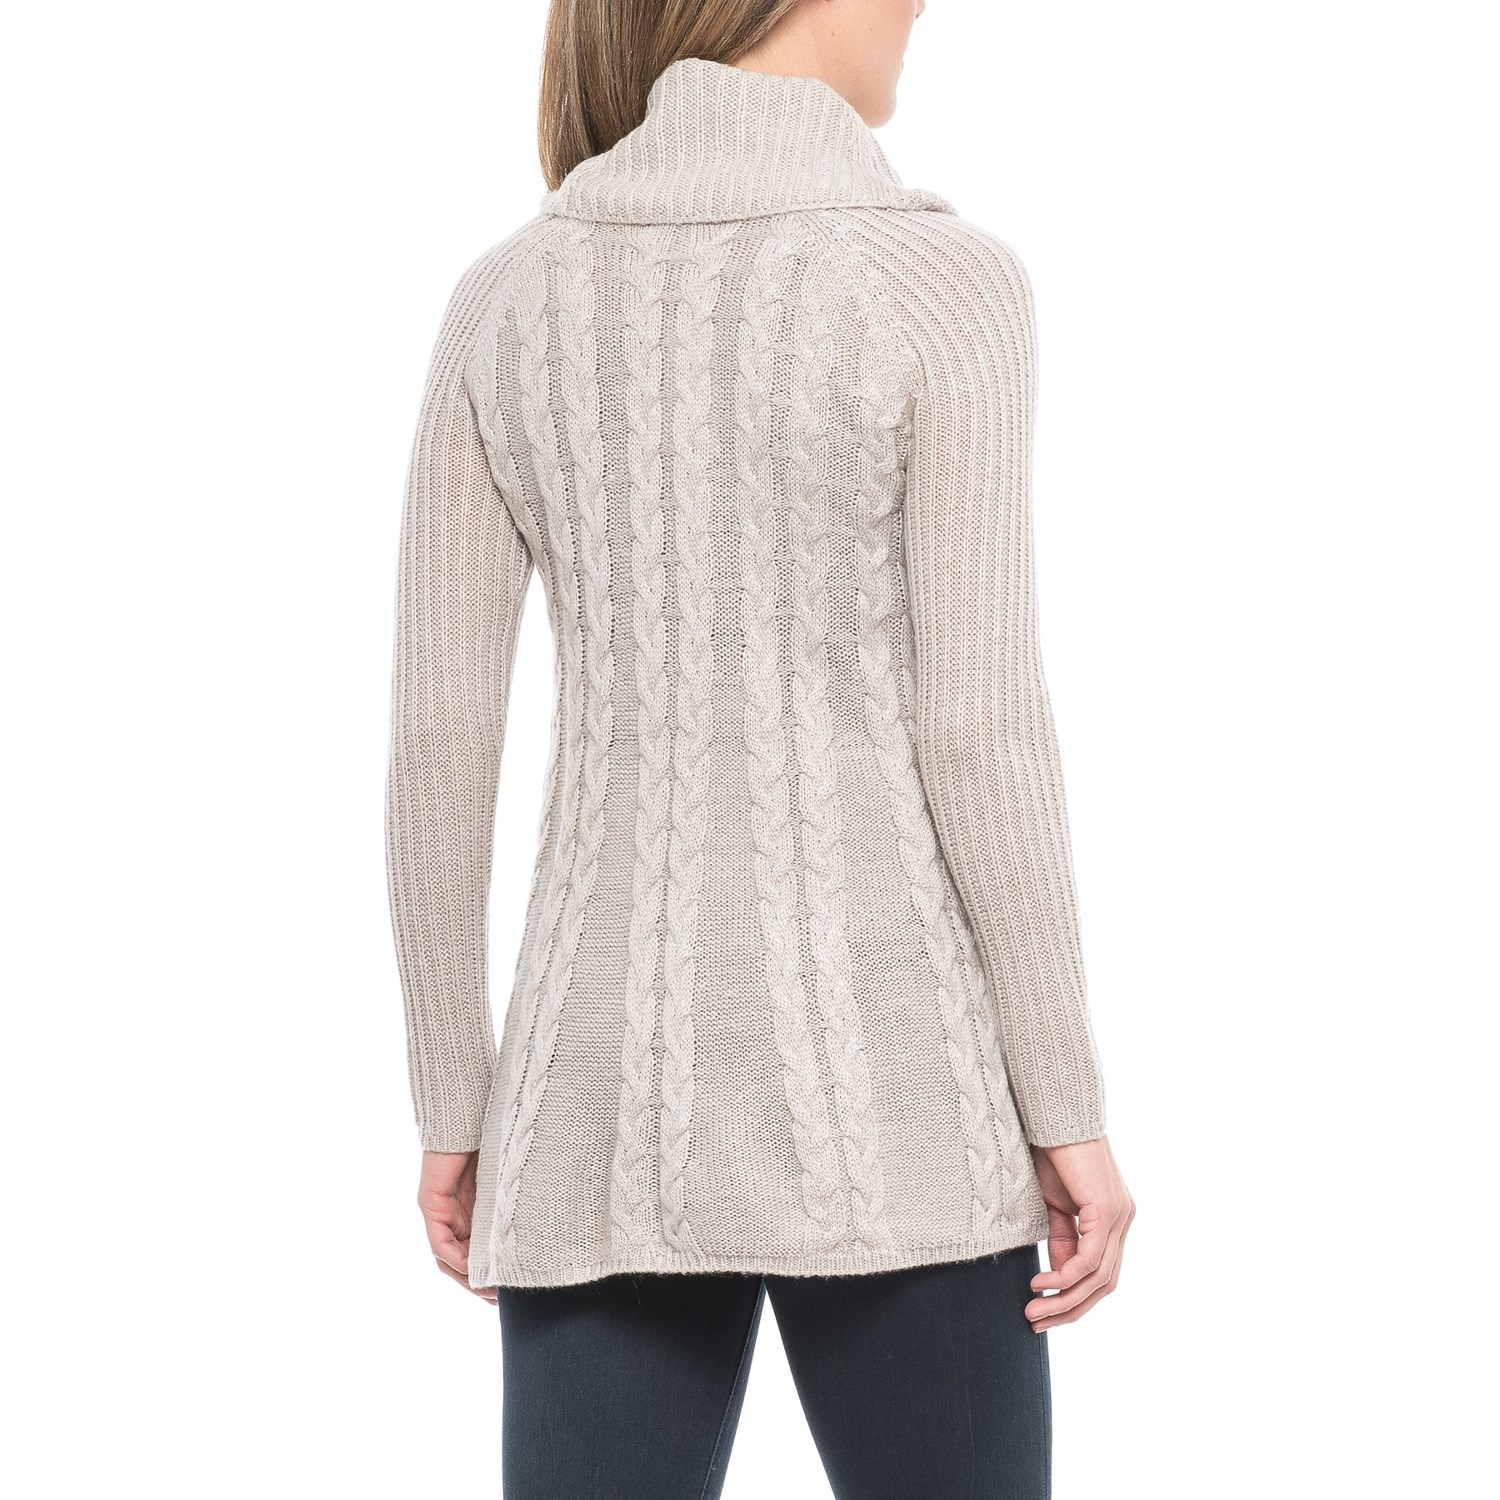 Cupio Cable-Knit Swing Sweater (For Women) - Save 59%